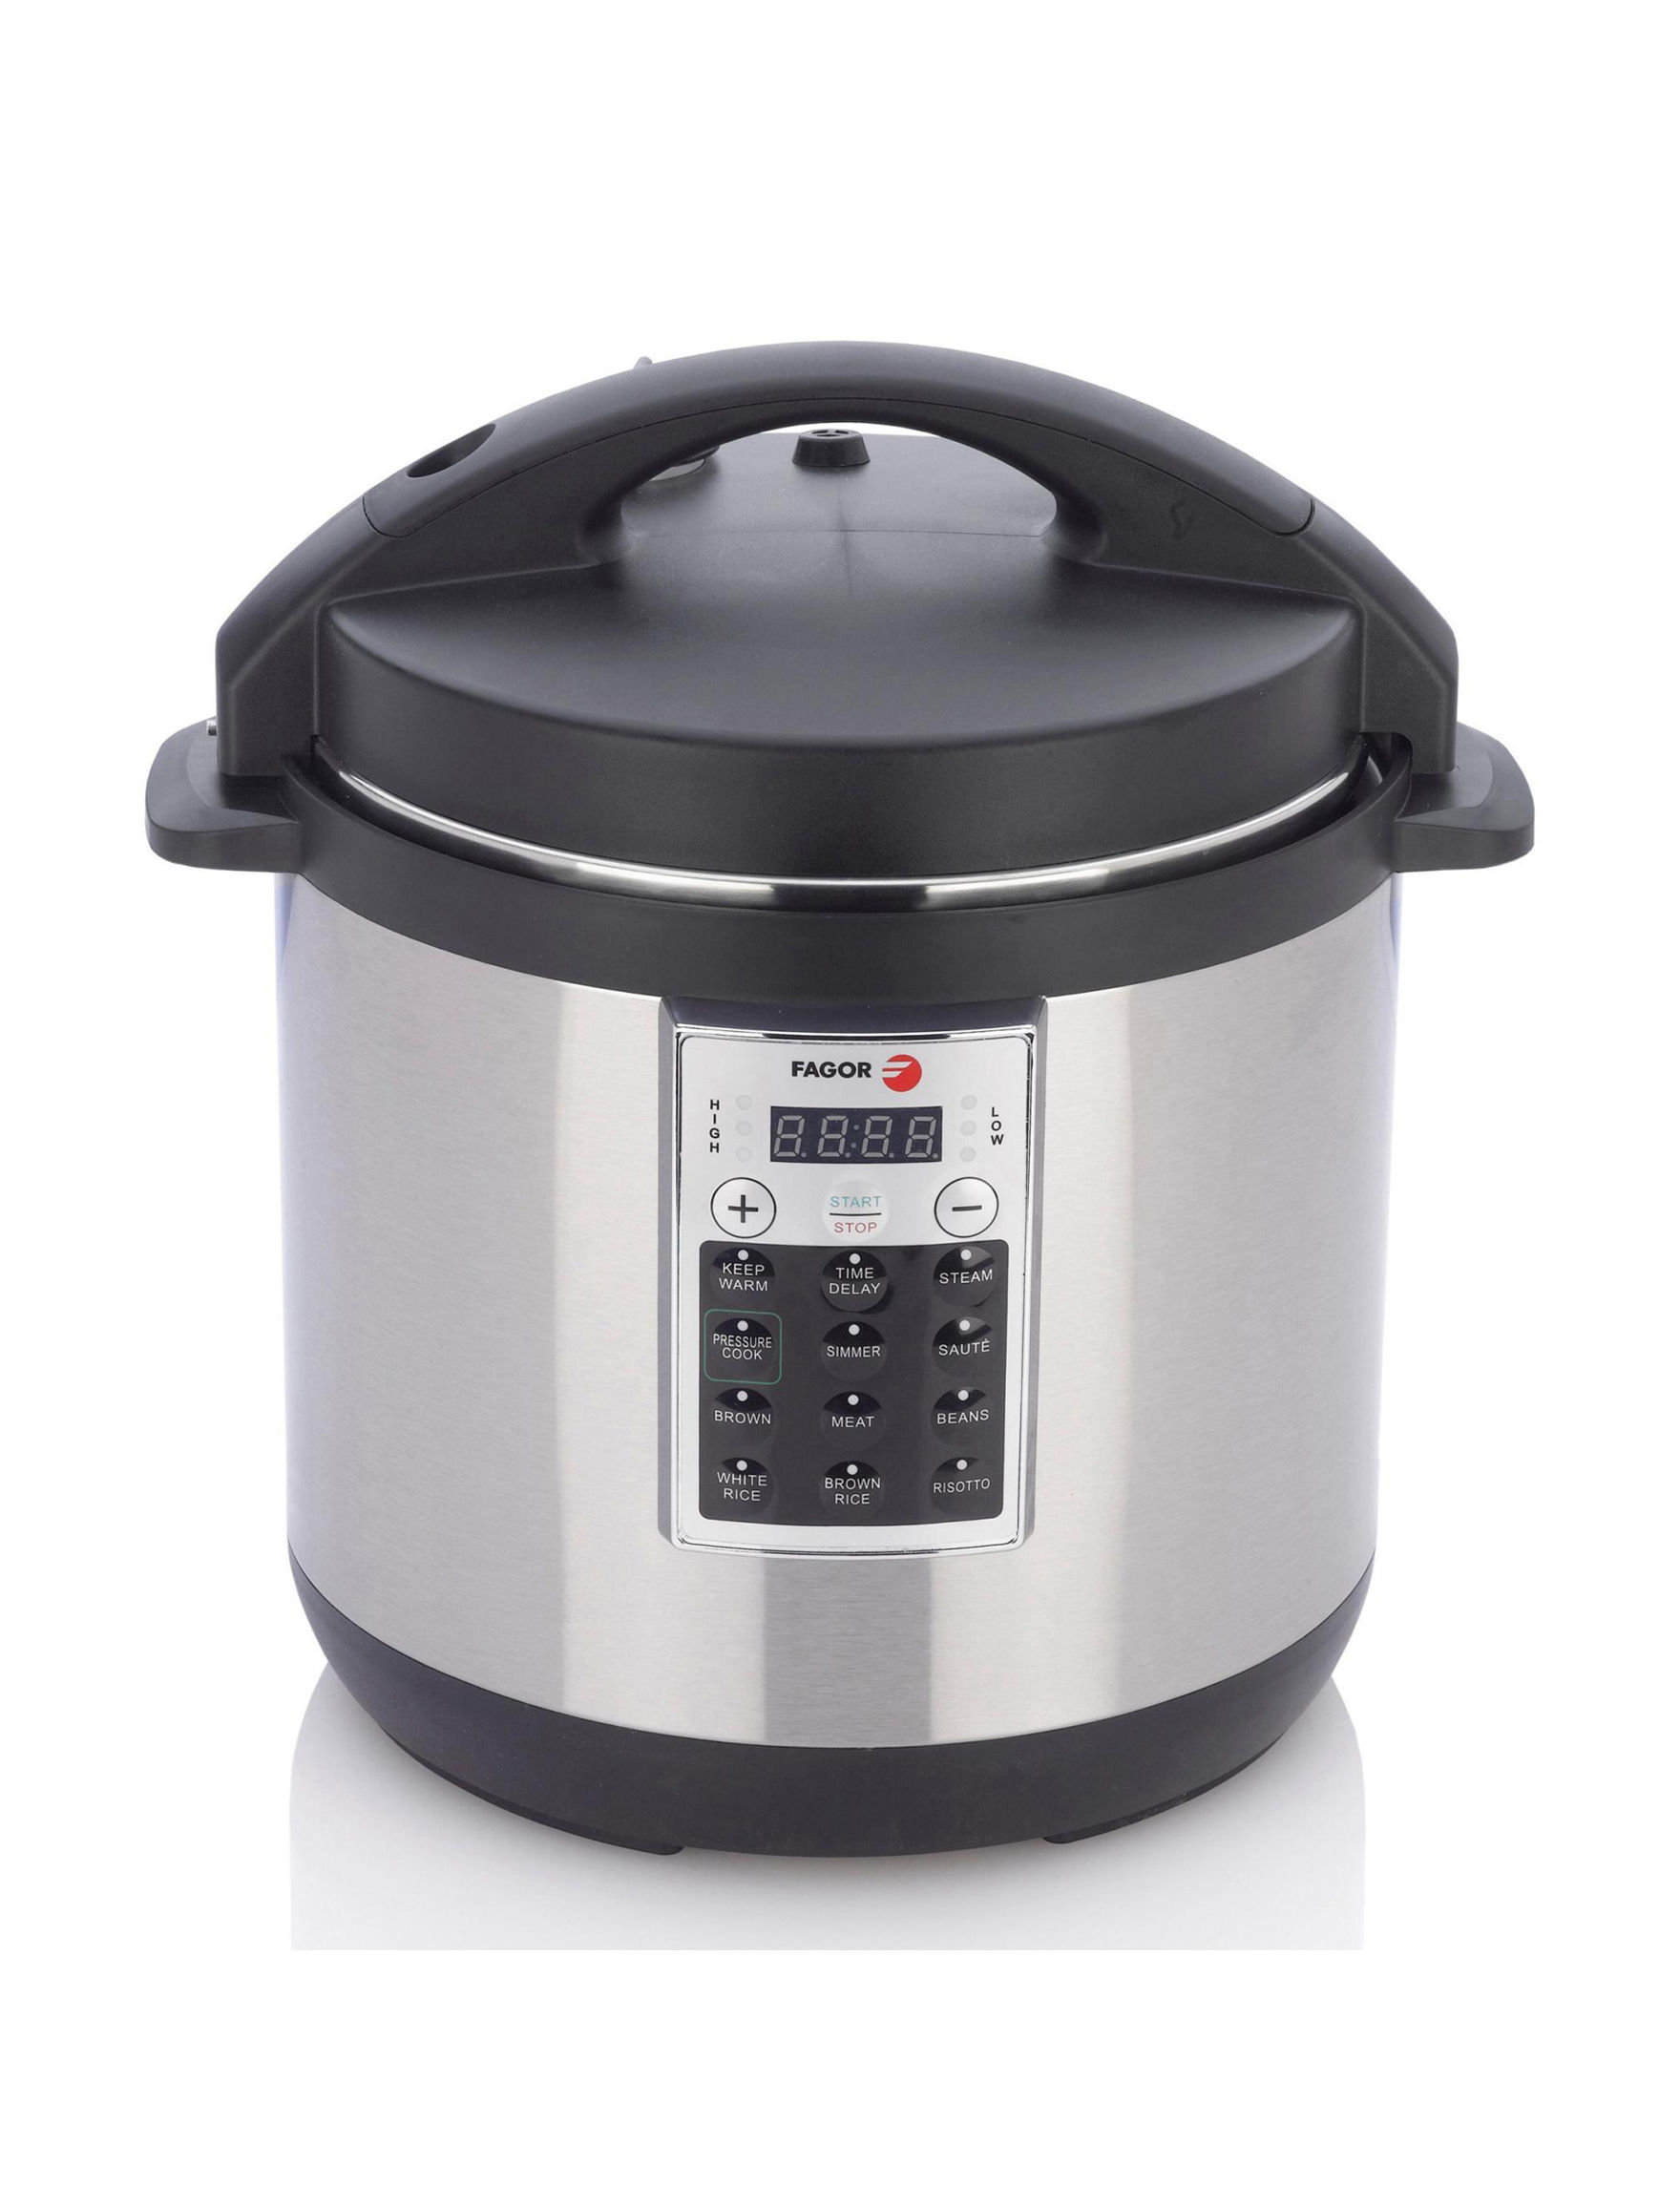 Fagor Stainless Pressure Cookers, Rice Cookers & Steamers Kitchen Appliances Prep & Tools